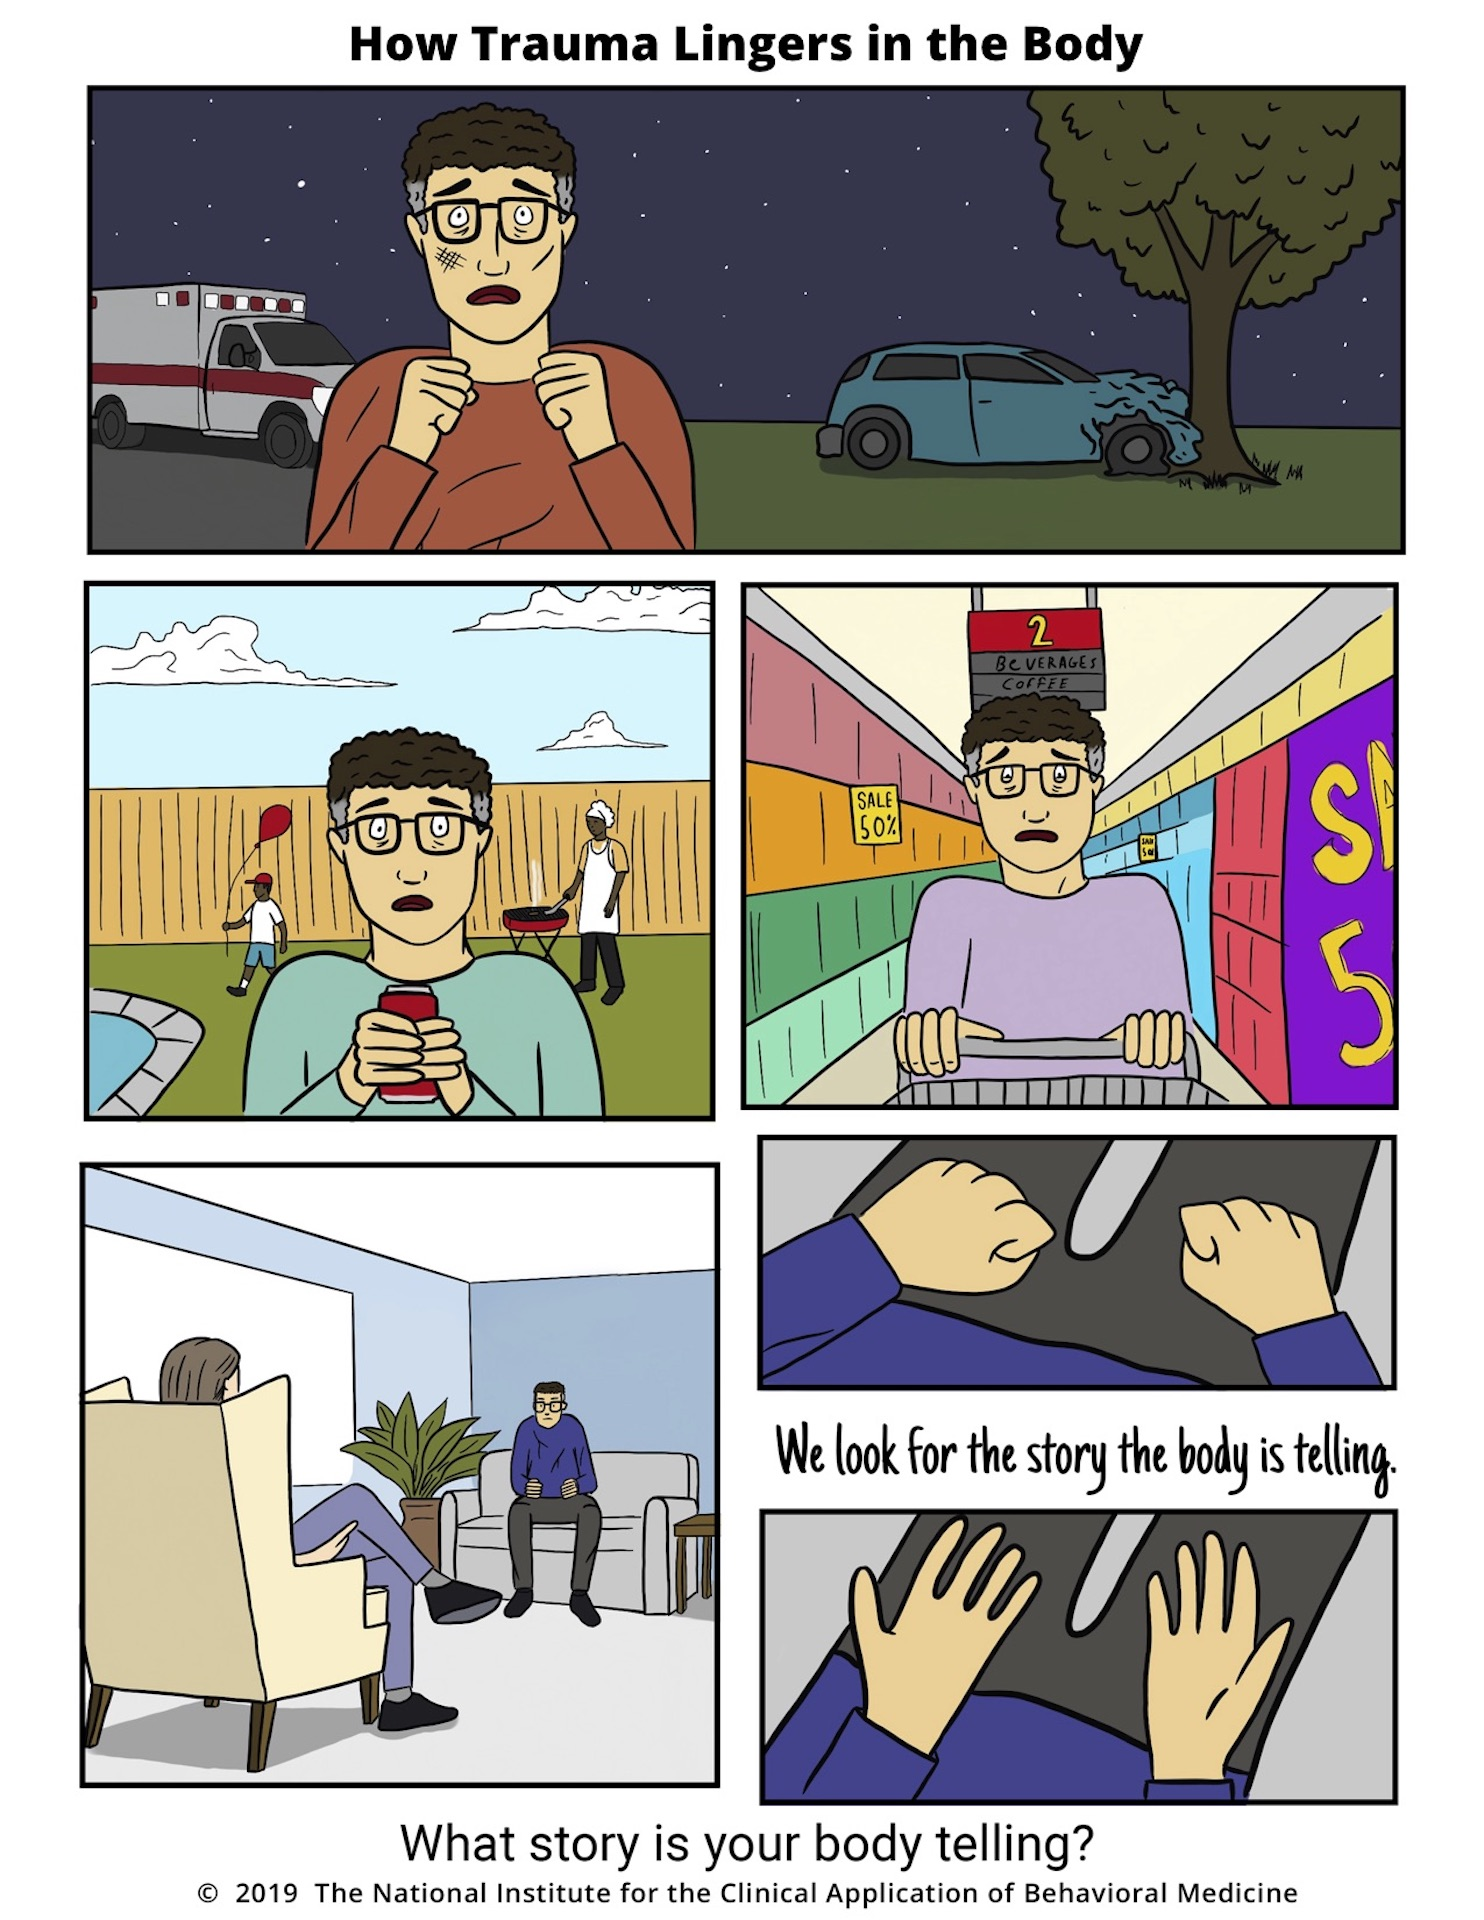 comic depicting how trauma lingers in the body which shows a man clenched in fear after a car accident, and then holding the same traumatized positioning even when partaking in routine activities